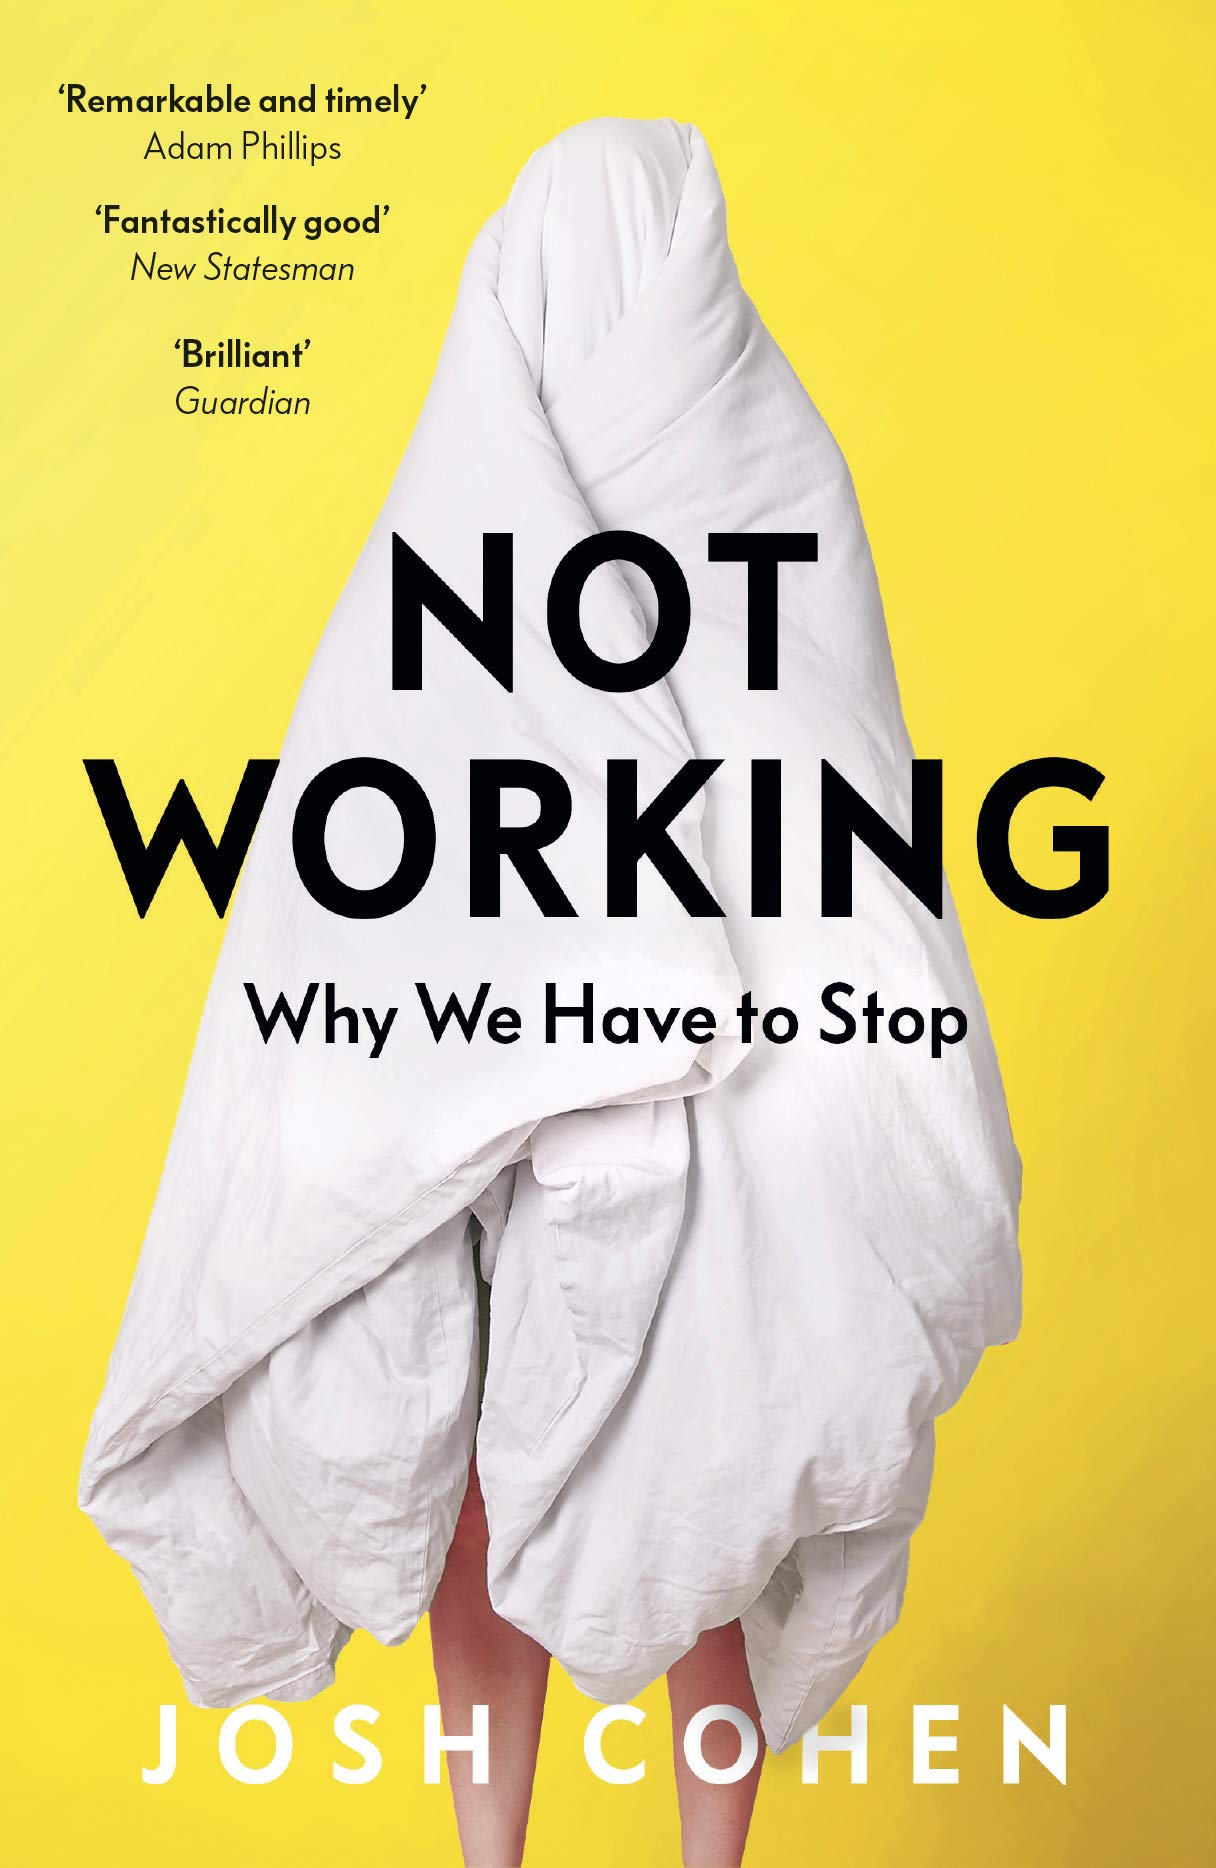 Not Working: Why We Have to Stop